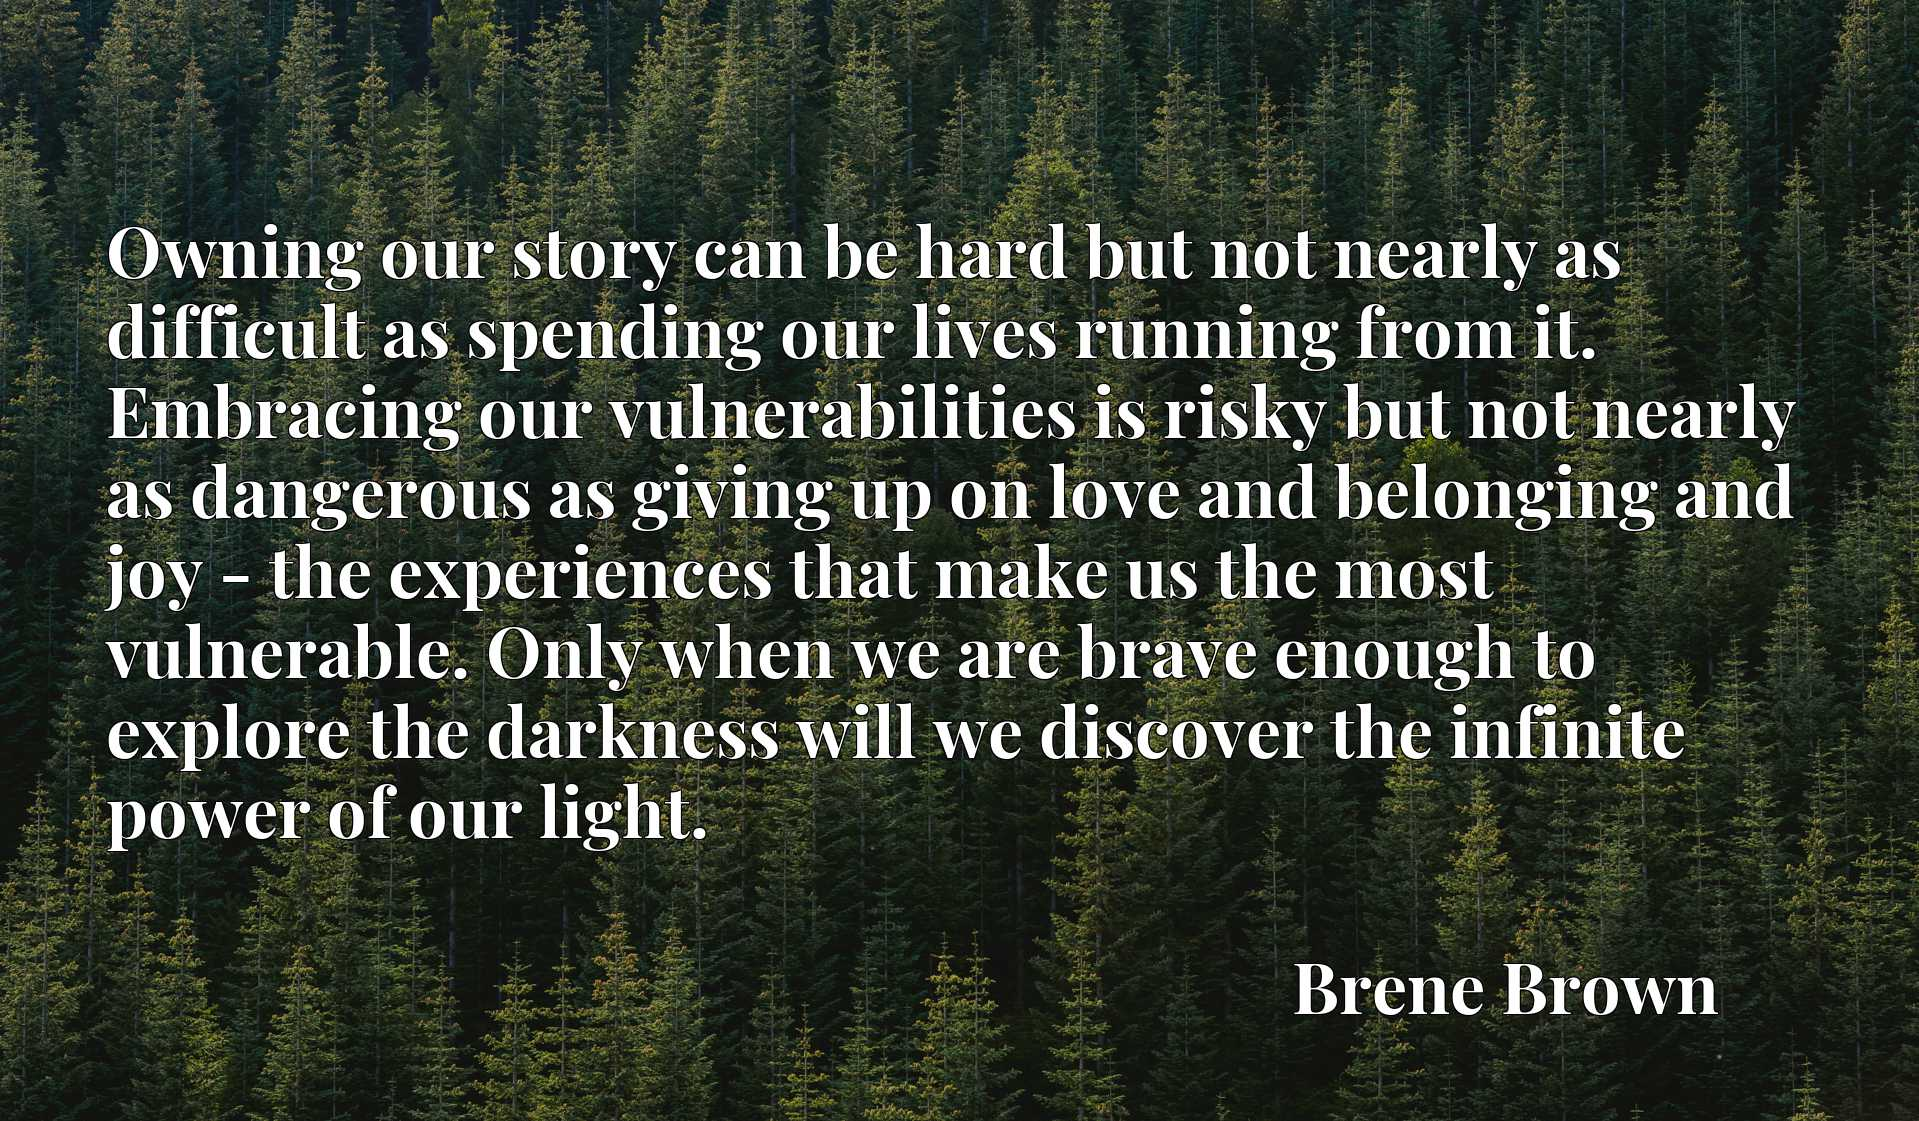 Owning our story can be hard but not nearly as difficult as spending our lives running from it. Embracing our vulnerabilities is risky but not nearly as dangerous as giving up on love and belonging and joy - the experiences that make us the most vulnerable. Only when we are brave enough to explore the darkness will we discover the infinite power of our light.